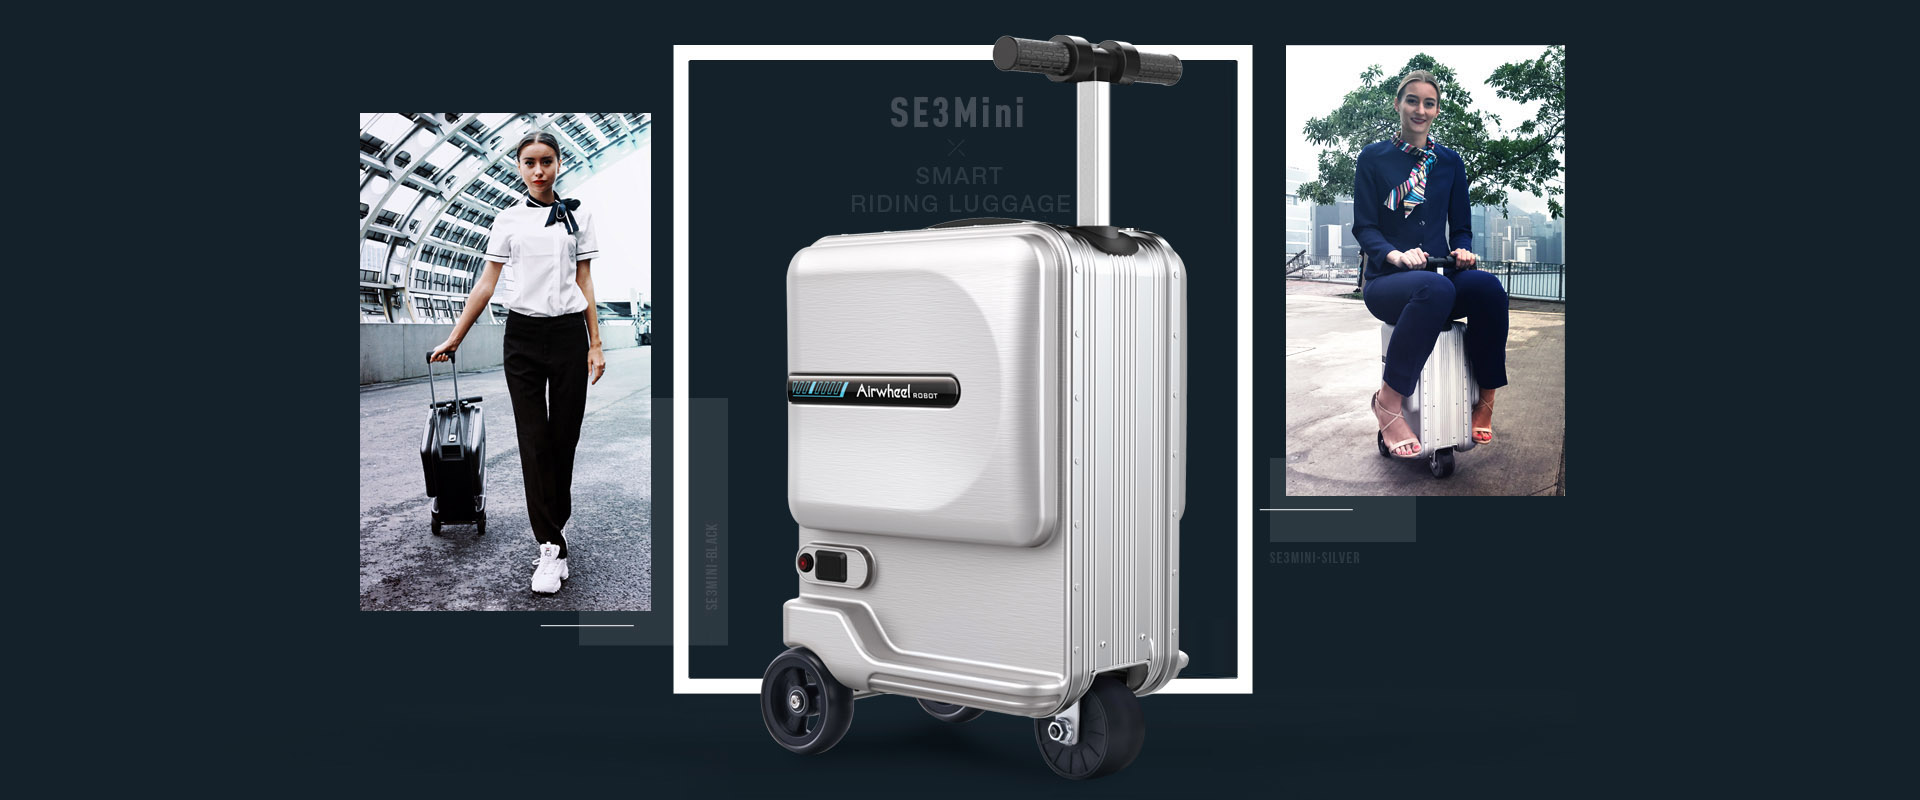 airwheel se3mini riding luggage